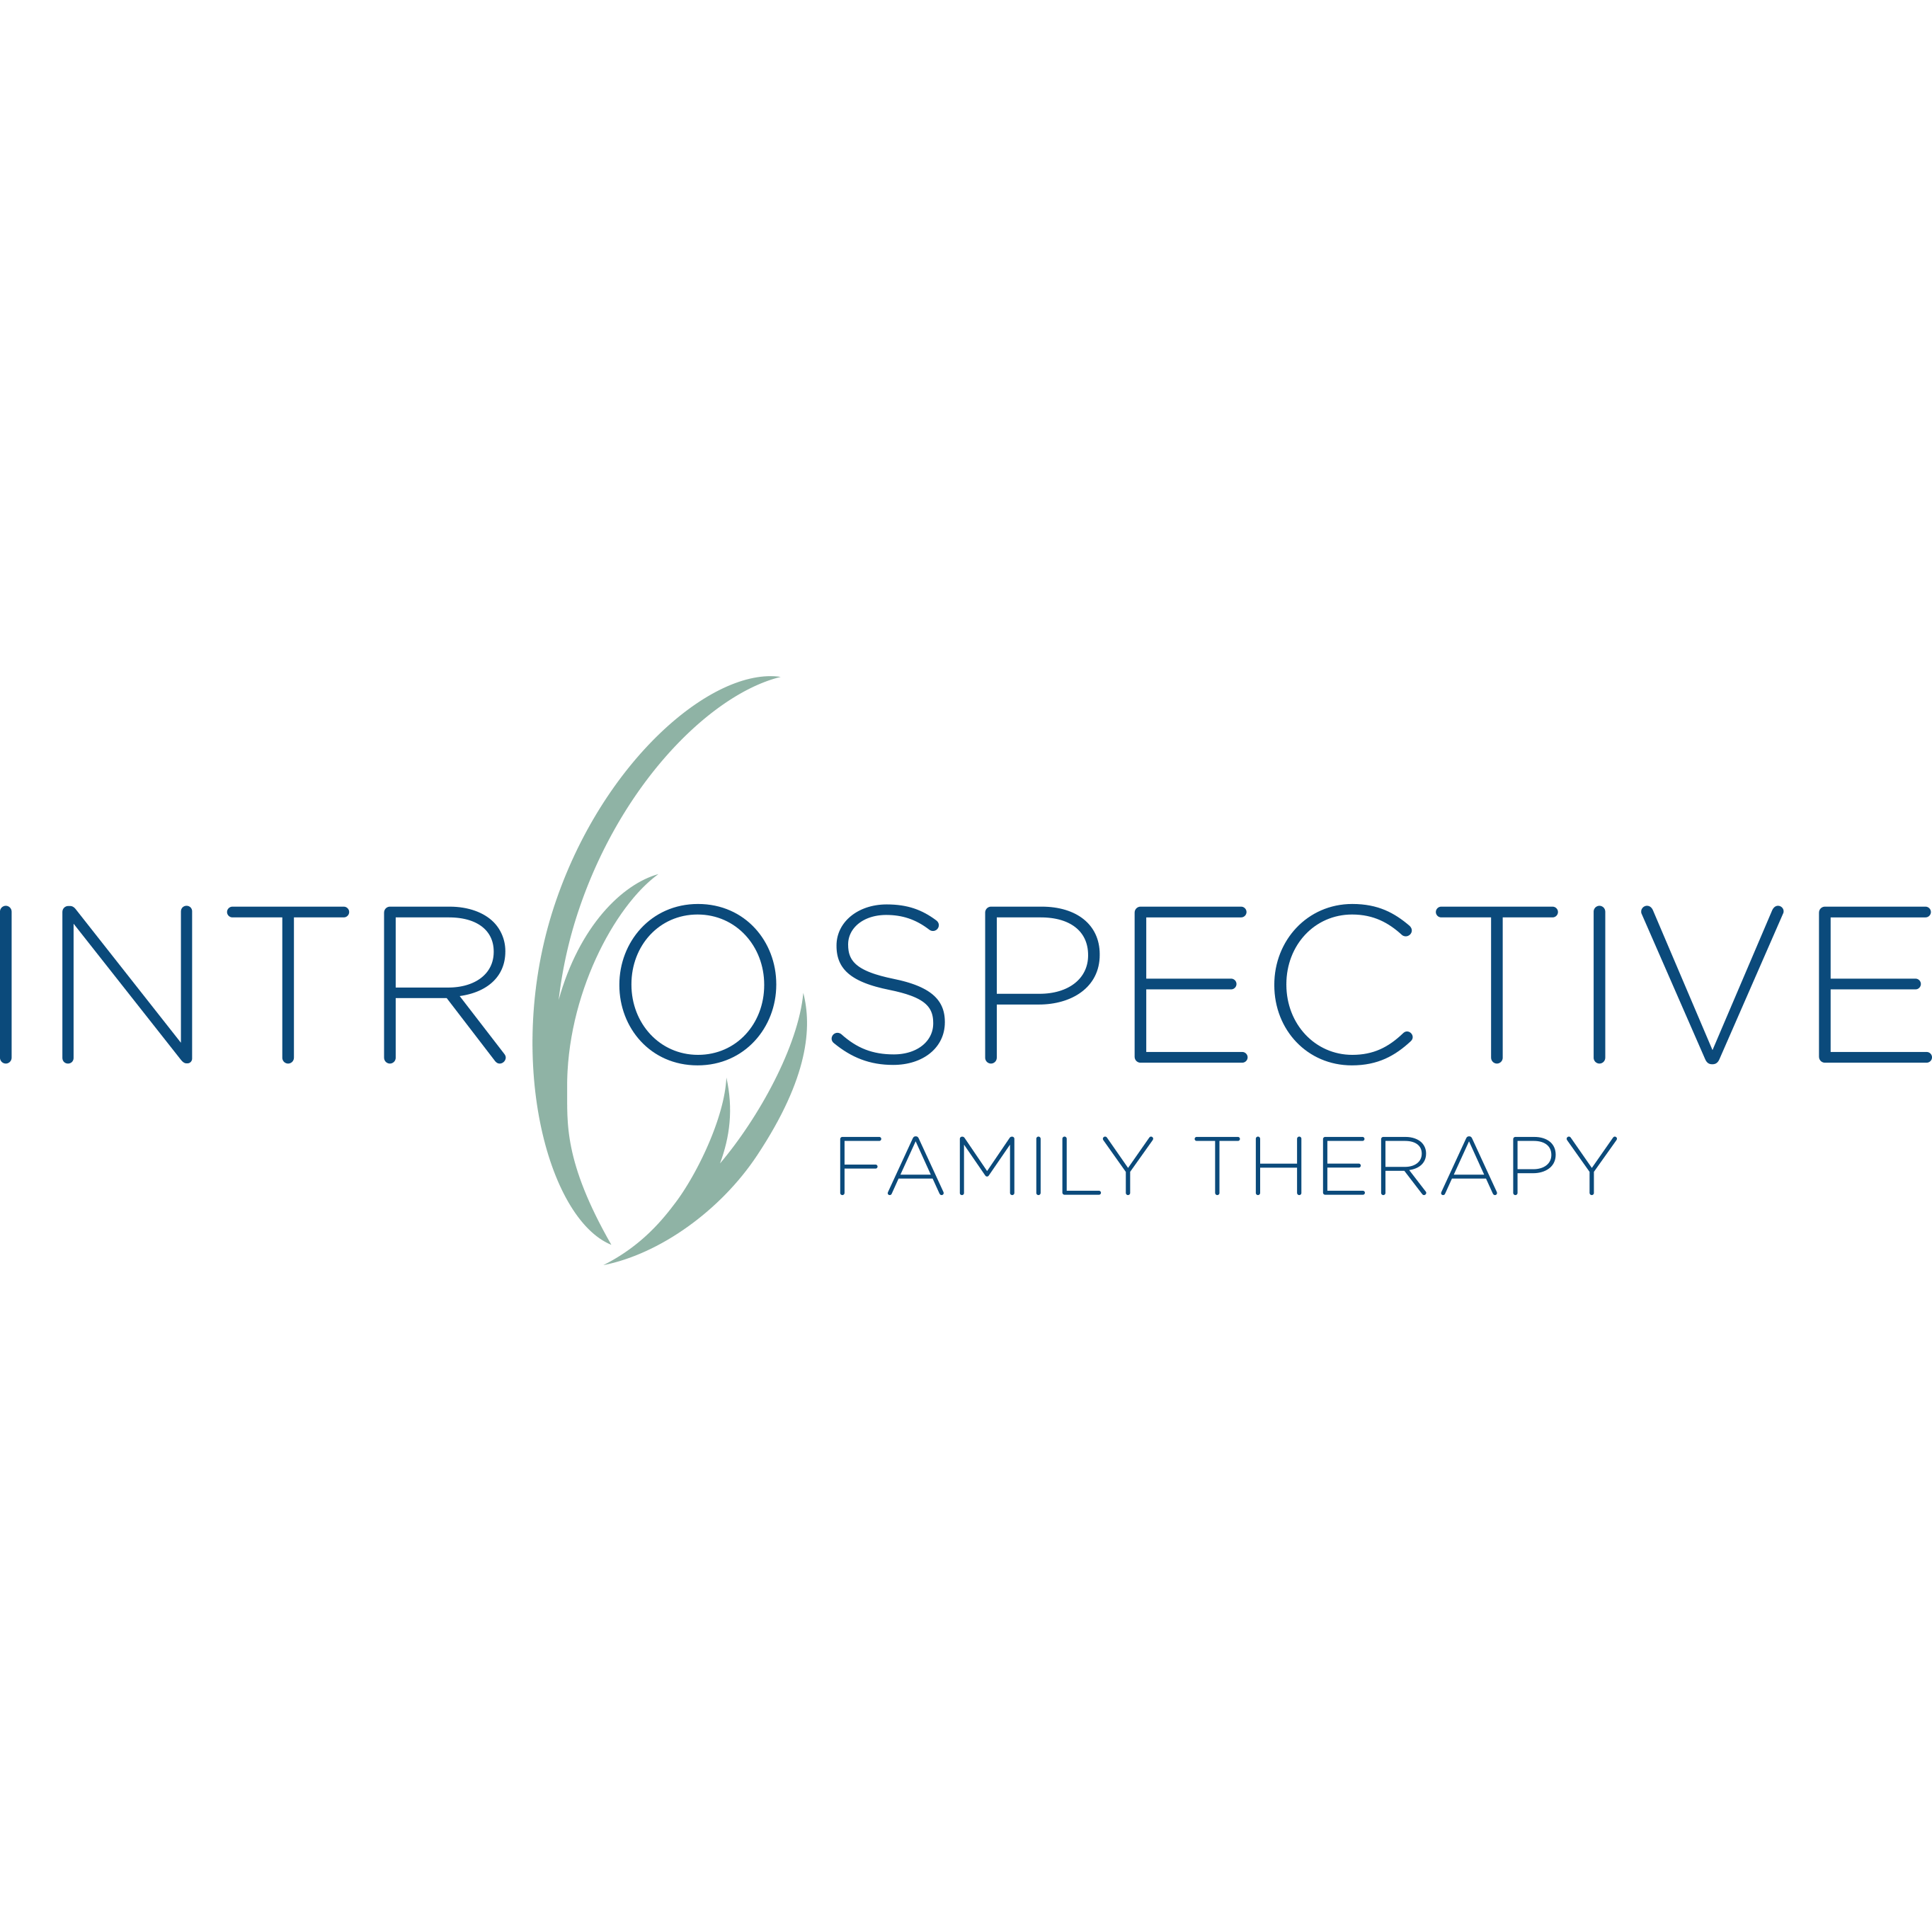 Introspective Family Therapy